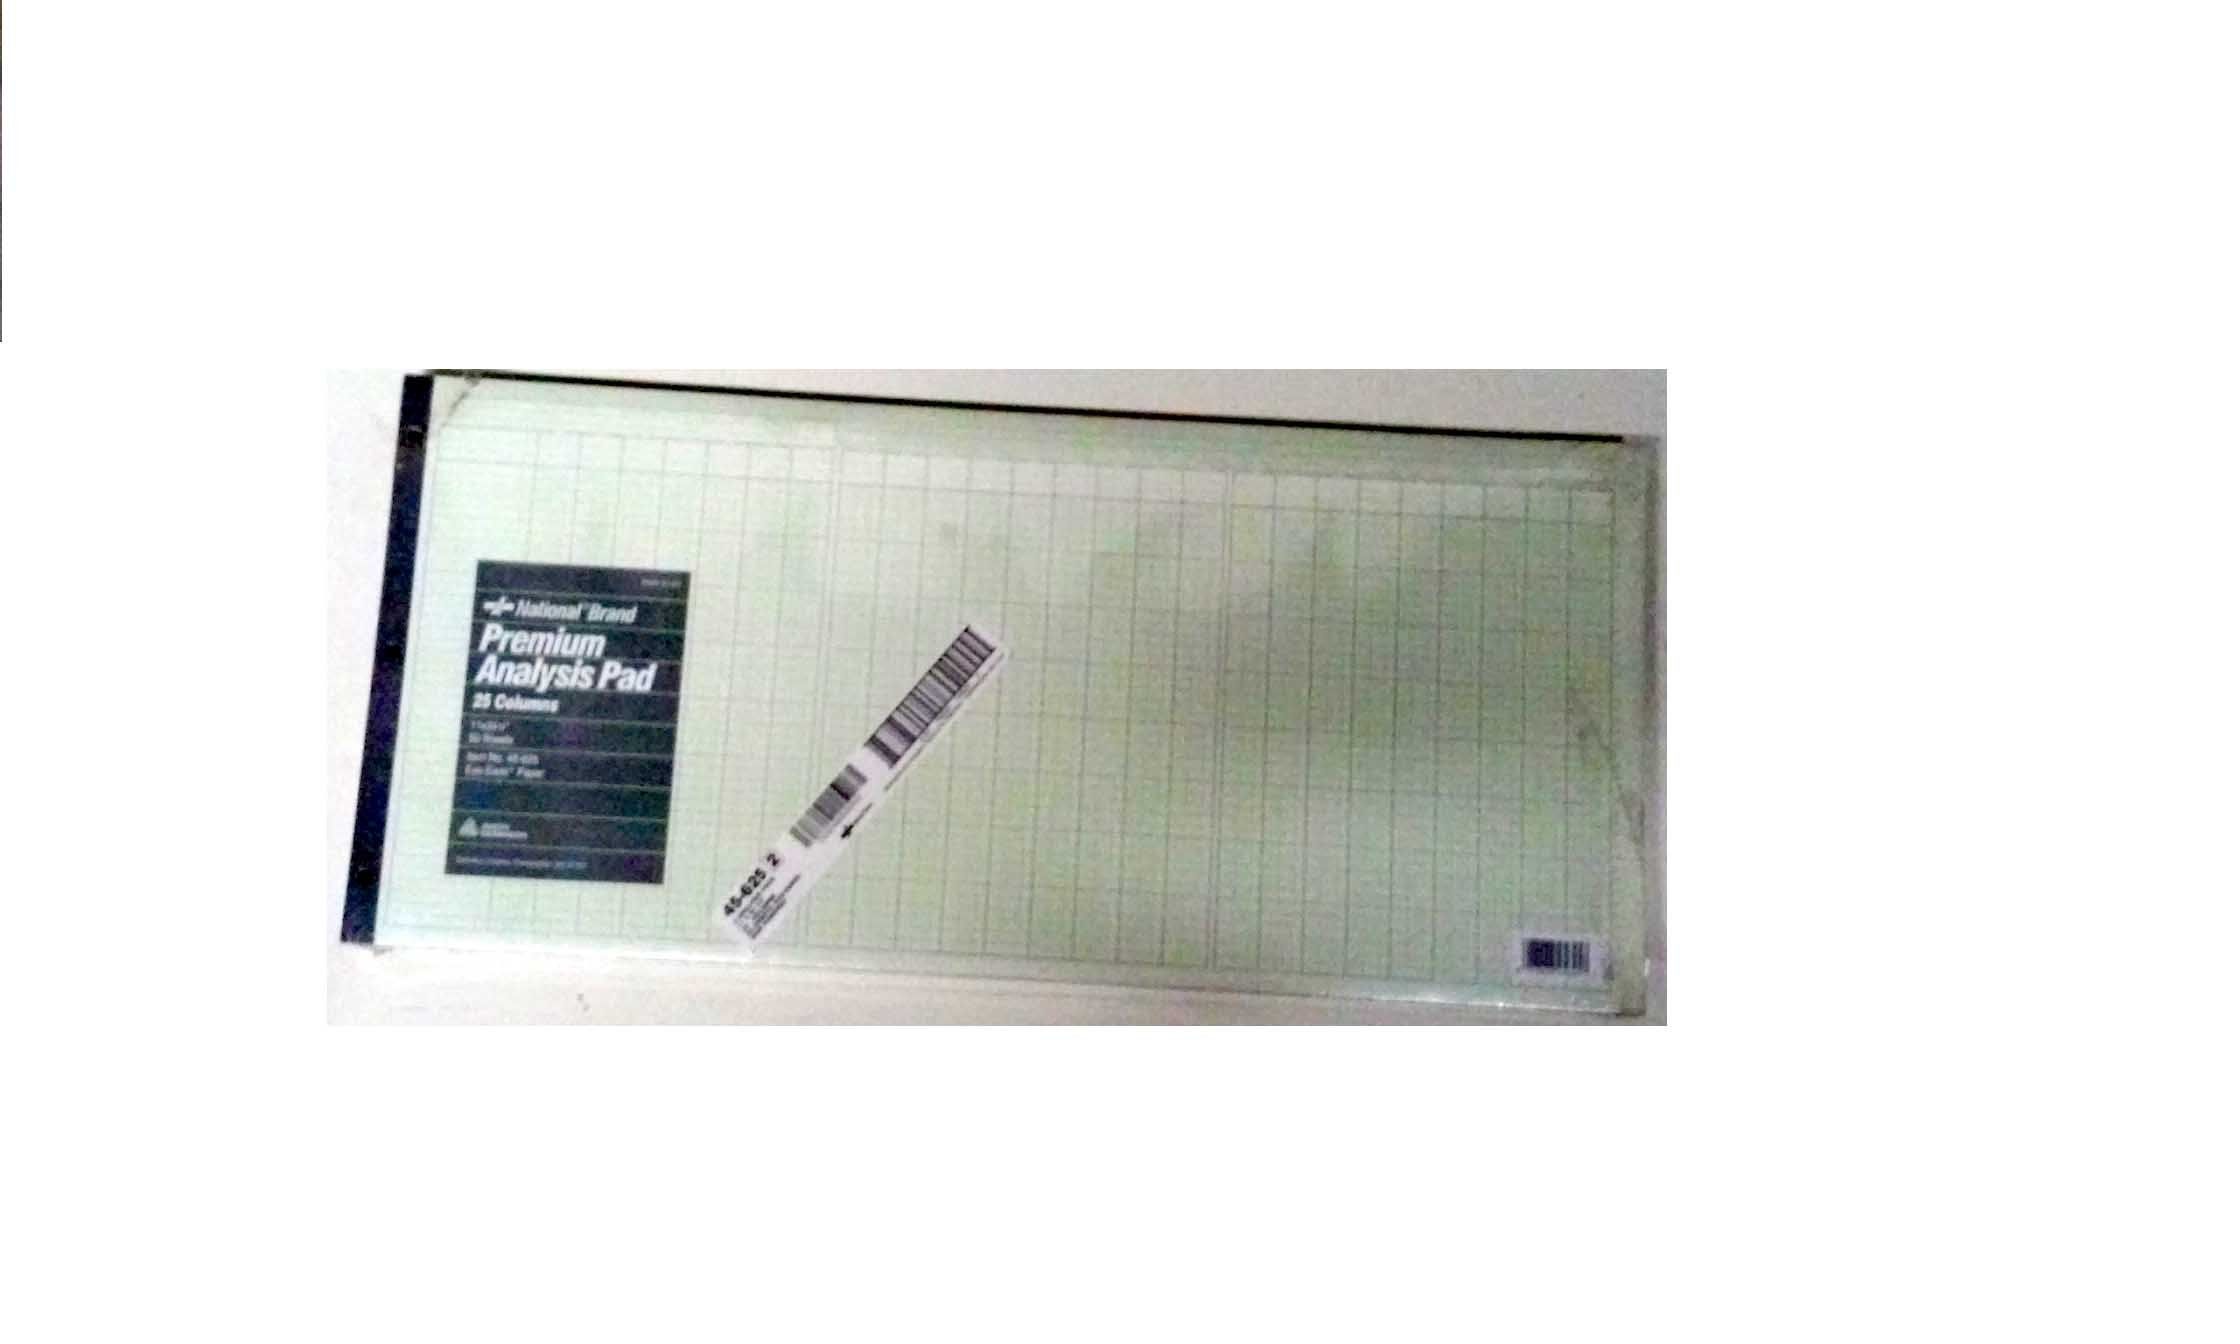 National Brand, Columnar Pad, 45-625, 11'' x 24-1/4'', Description Space 1-7/8'' by National Brand